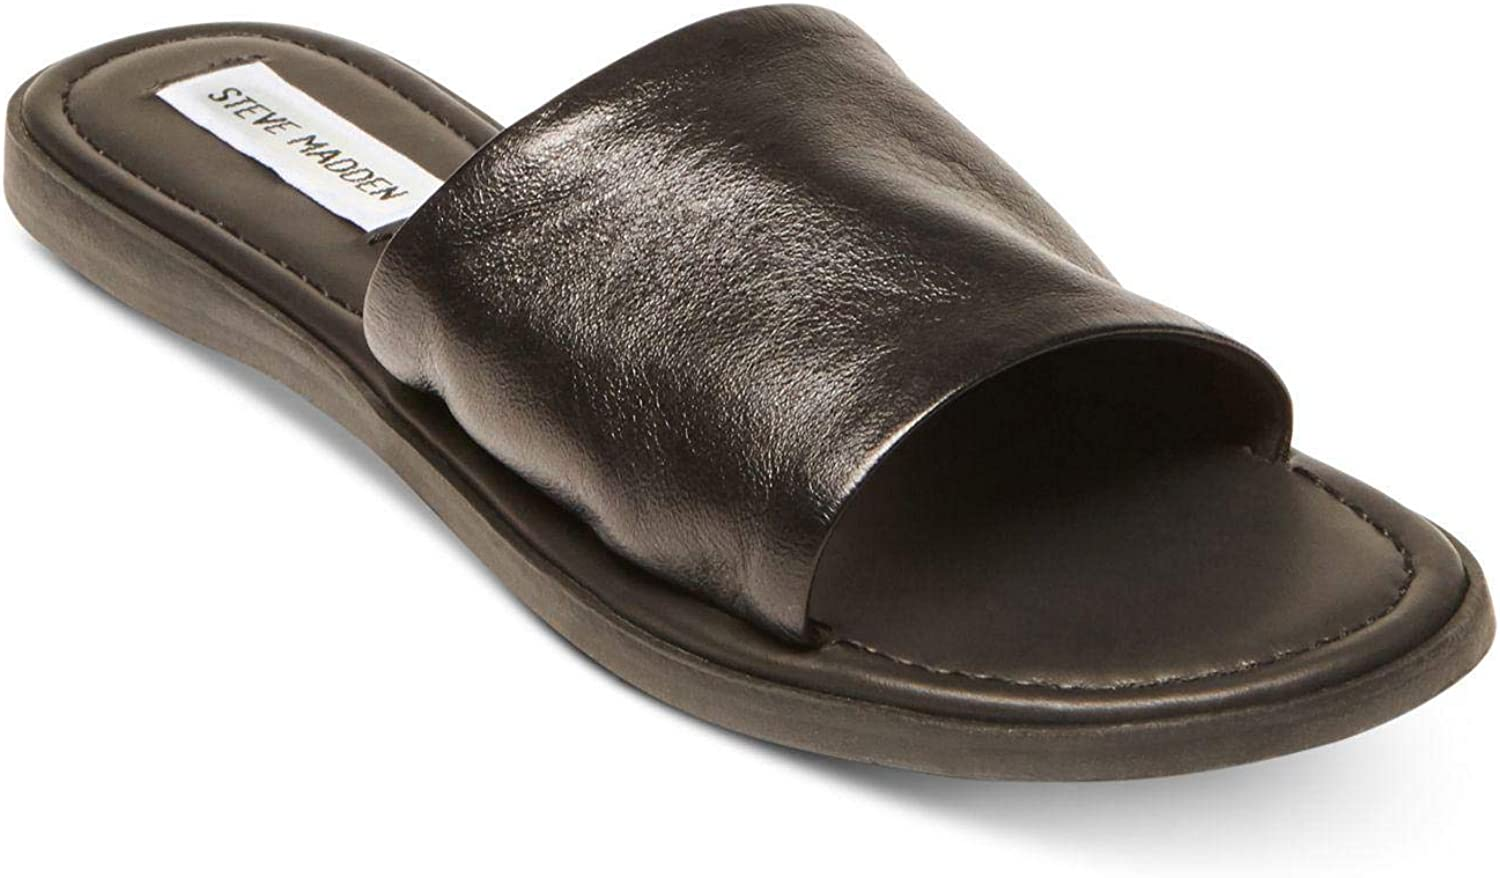 Steve Madden Womens Camilla Leather Open Toe Casual Slide Sandals